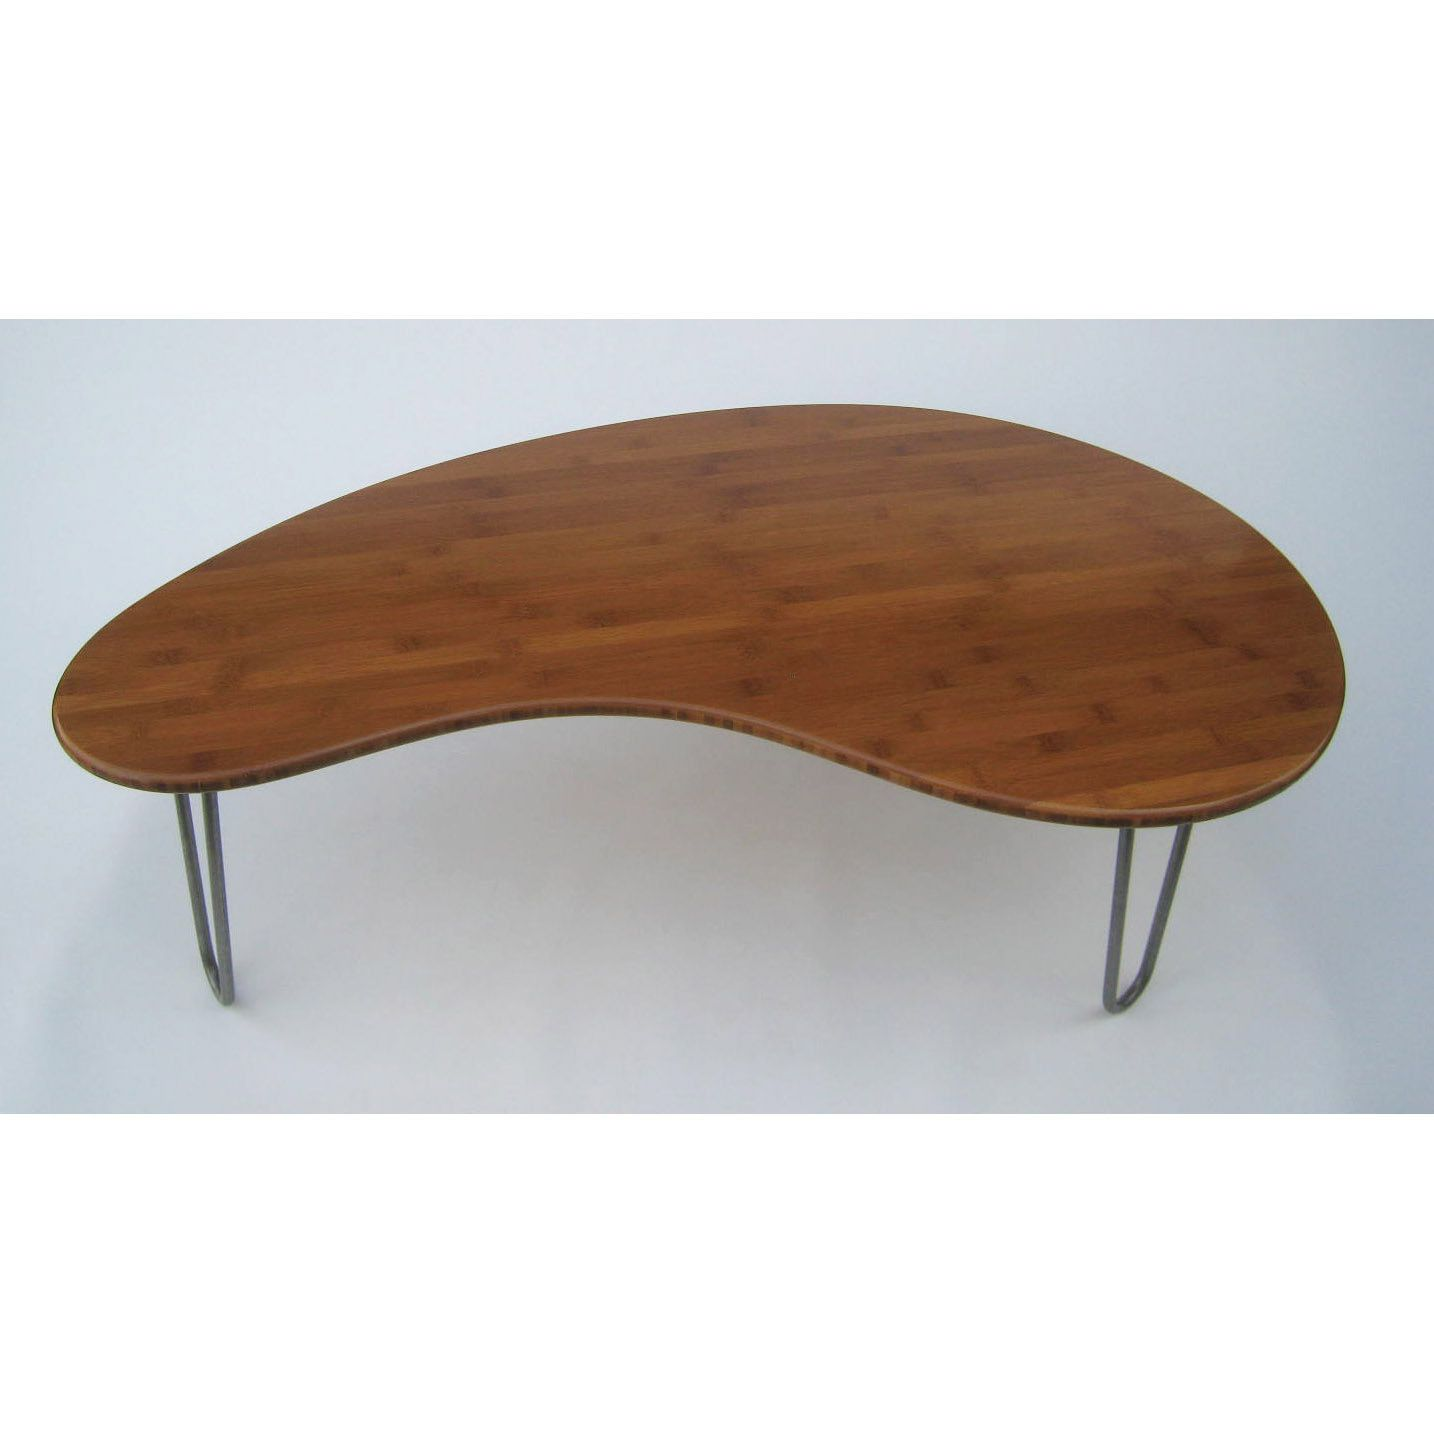 Mid Century Modern Coffee Table Caramelized Kidney Bean Shaped